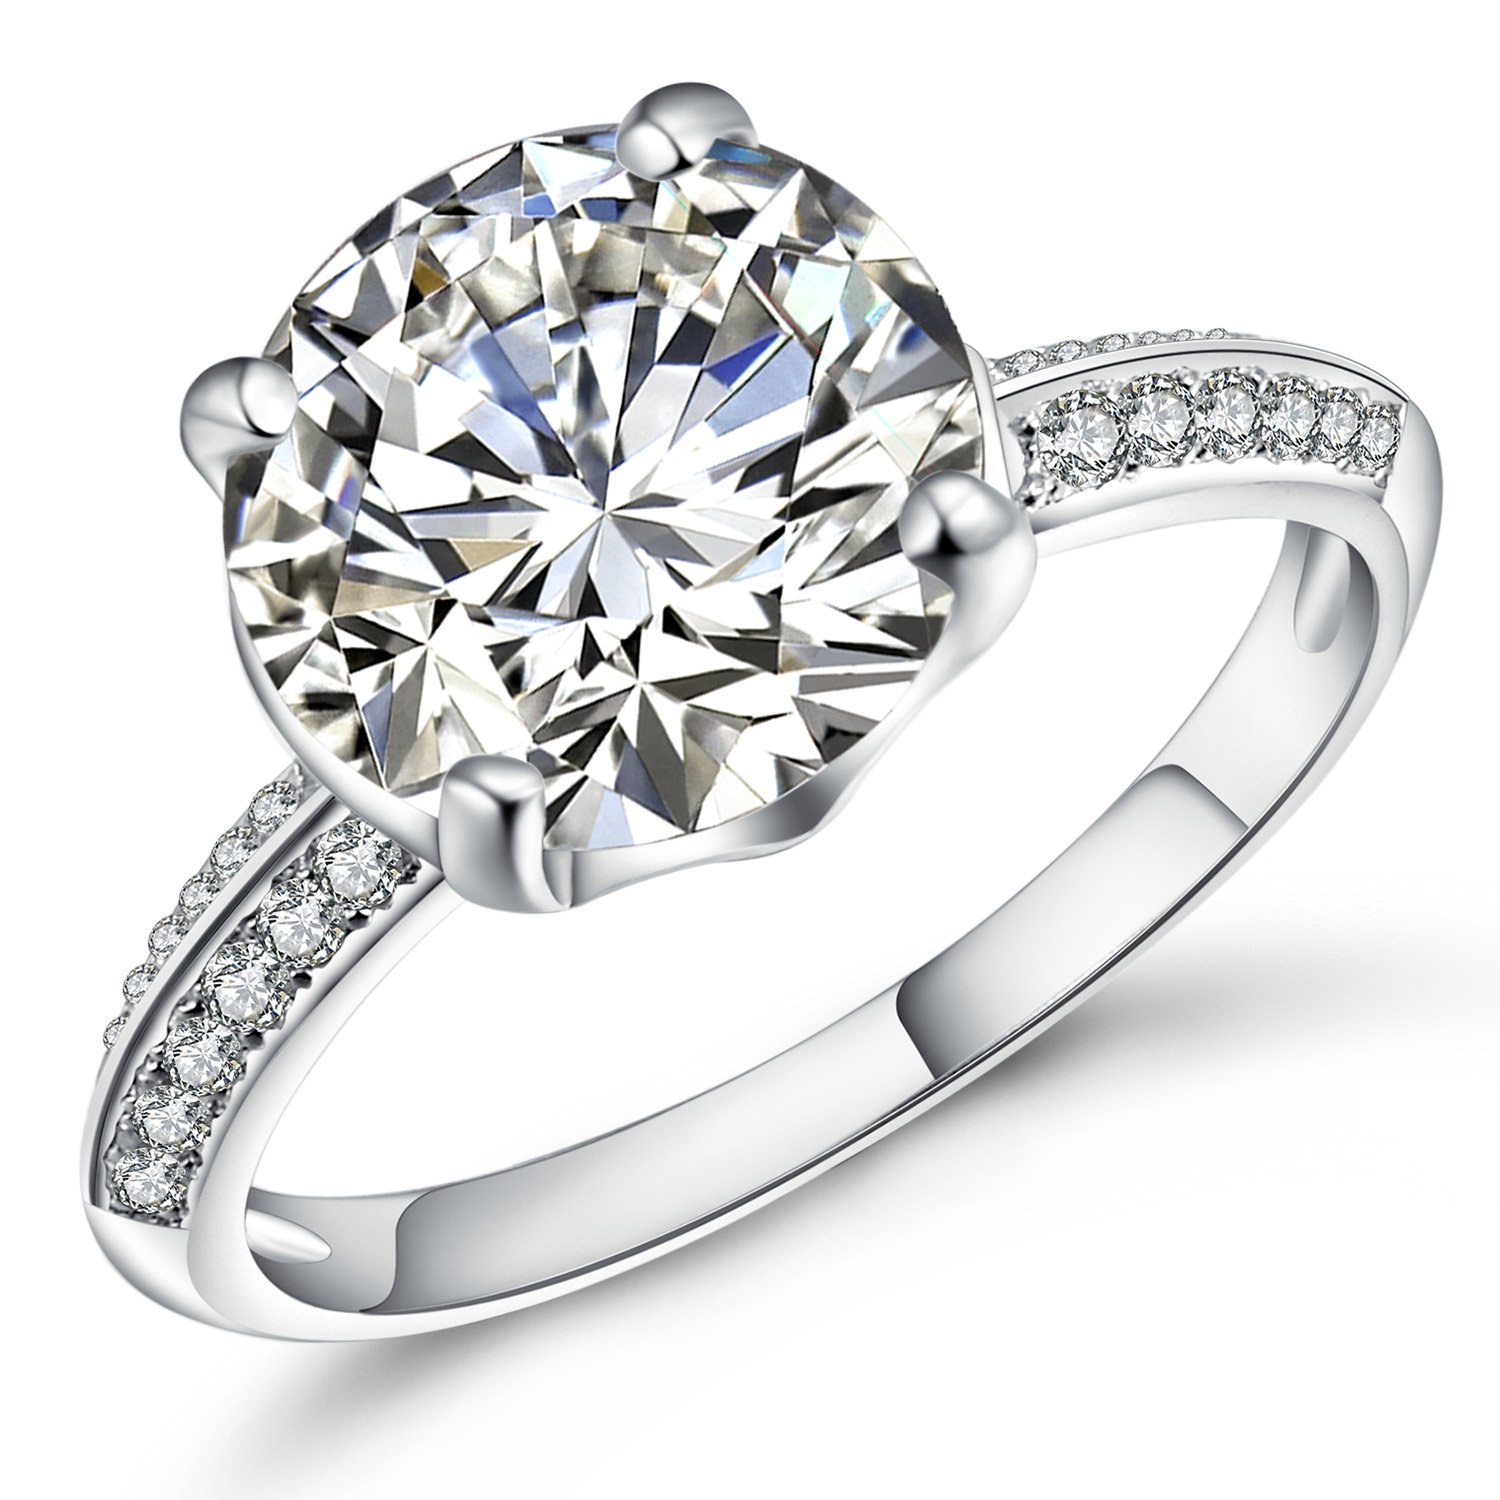 Vibrille Sterling Silver 4 Carat Round Solitaire CZ Cubic Zirconia Engagement Ring for Women Size 6